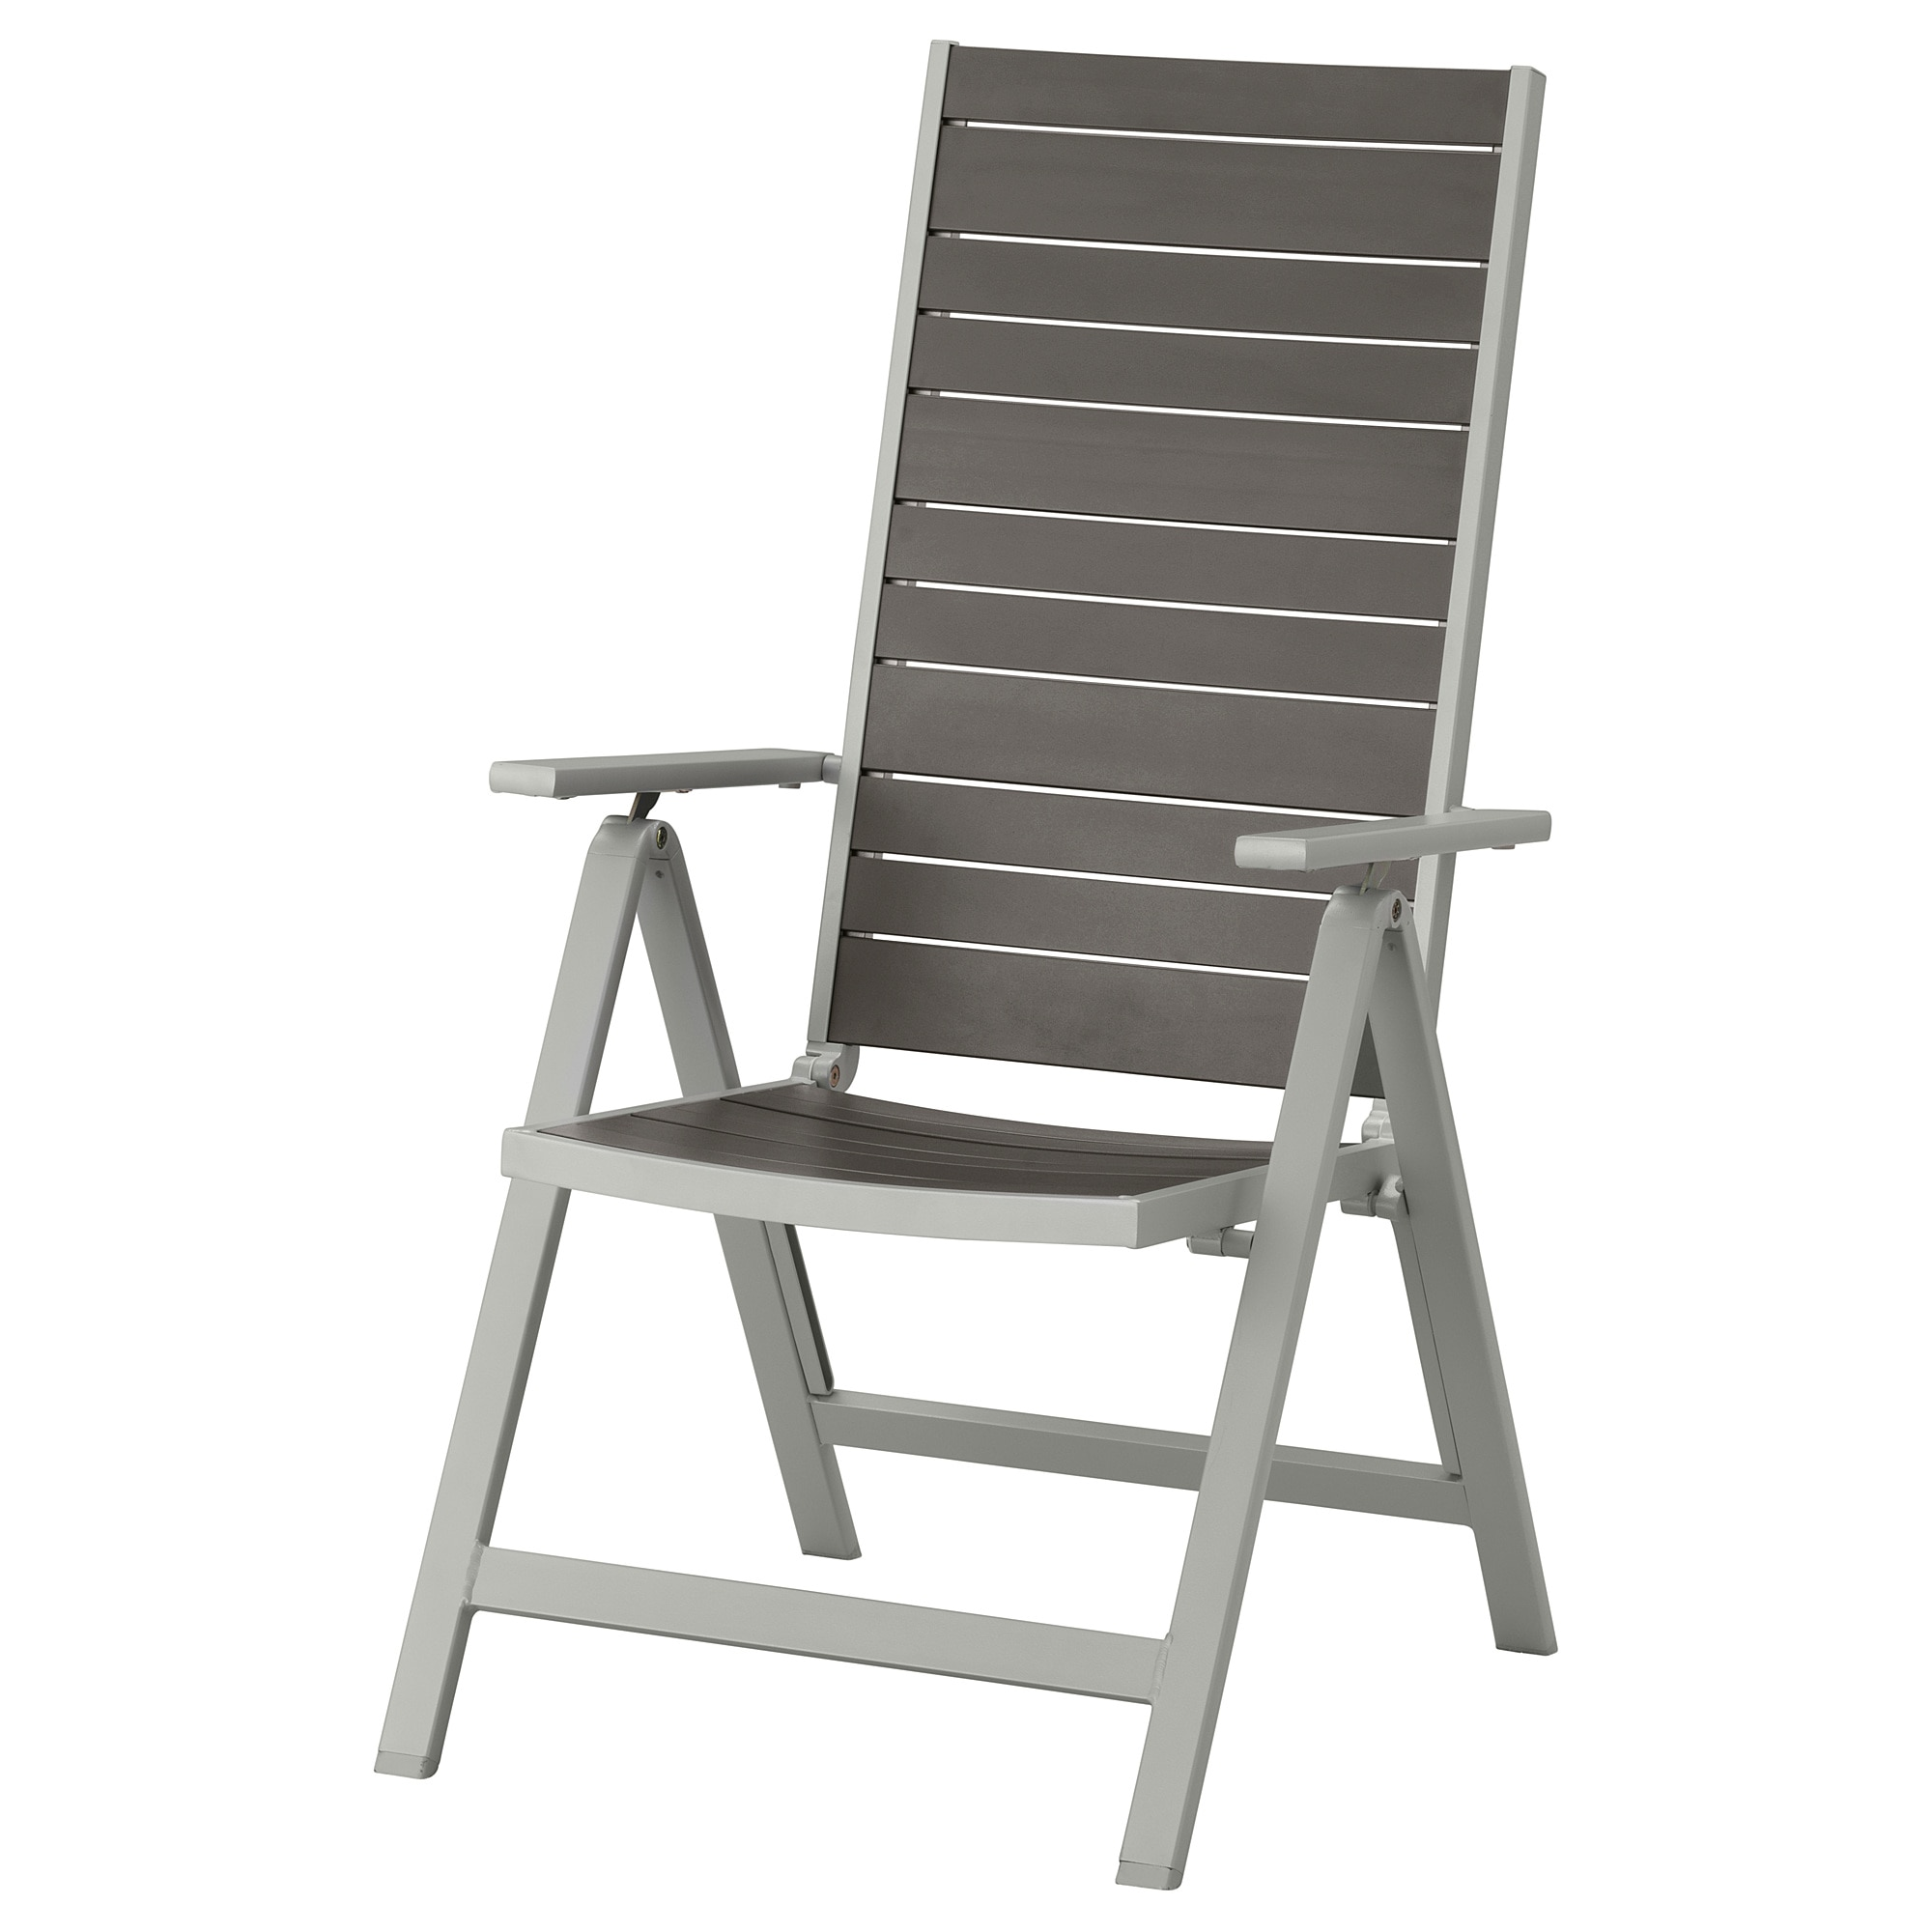 SjÄlland Reclining Chair Outdoor Light Gray Foldable Dark